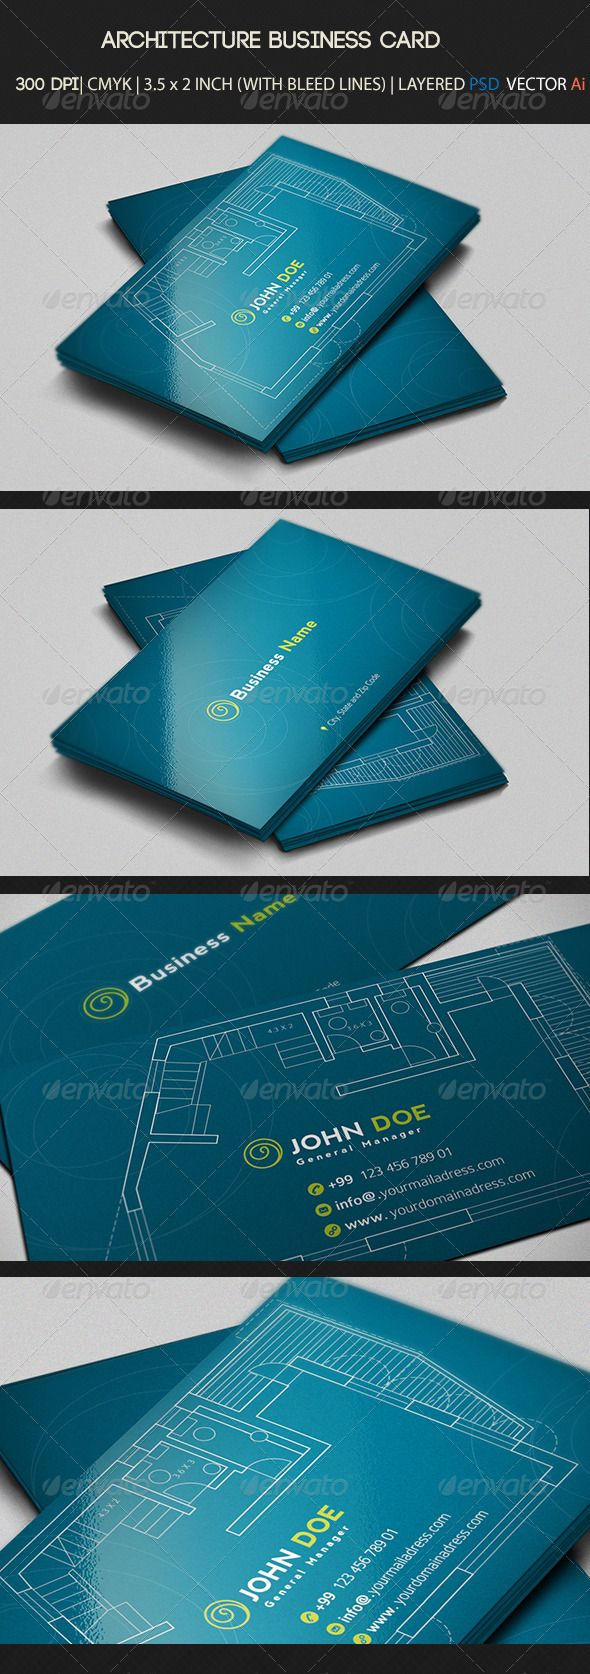 The 25+ best Architecture business cards ideas on Pinterest ...